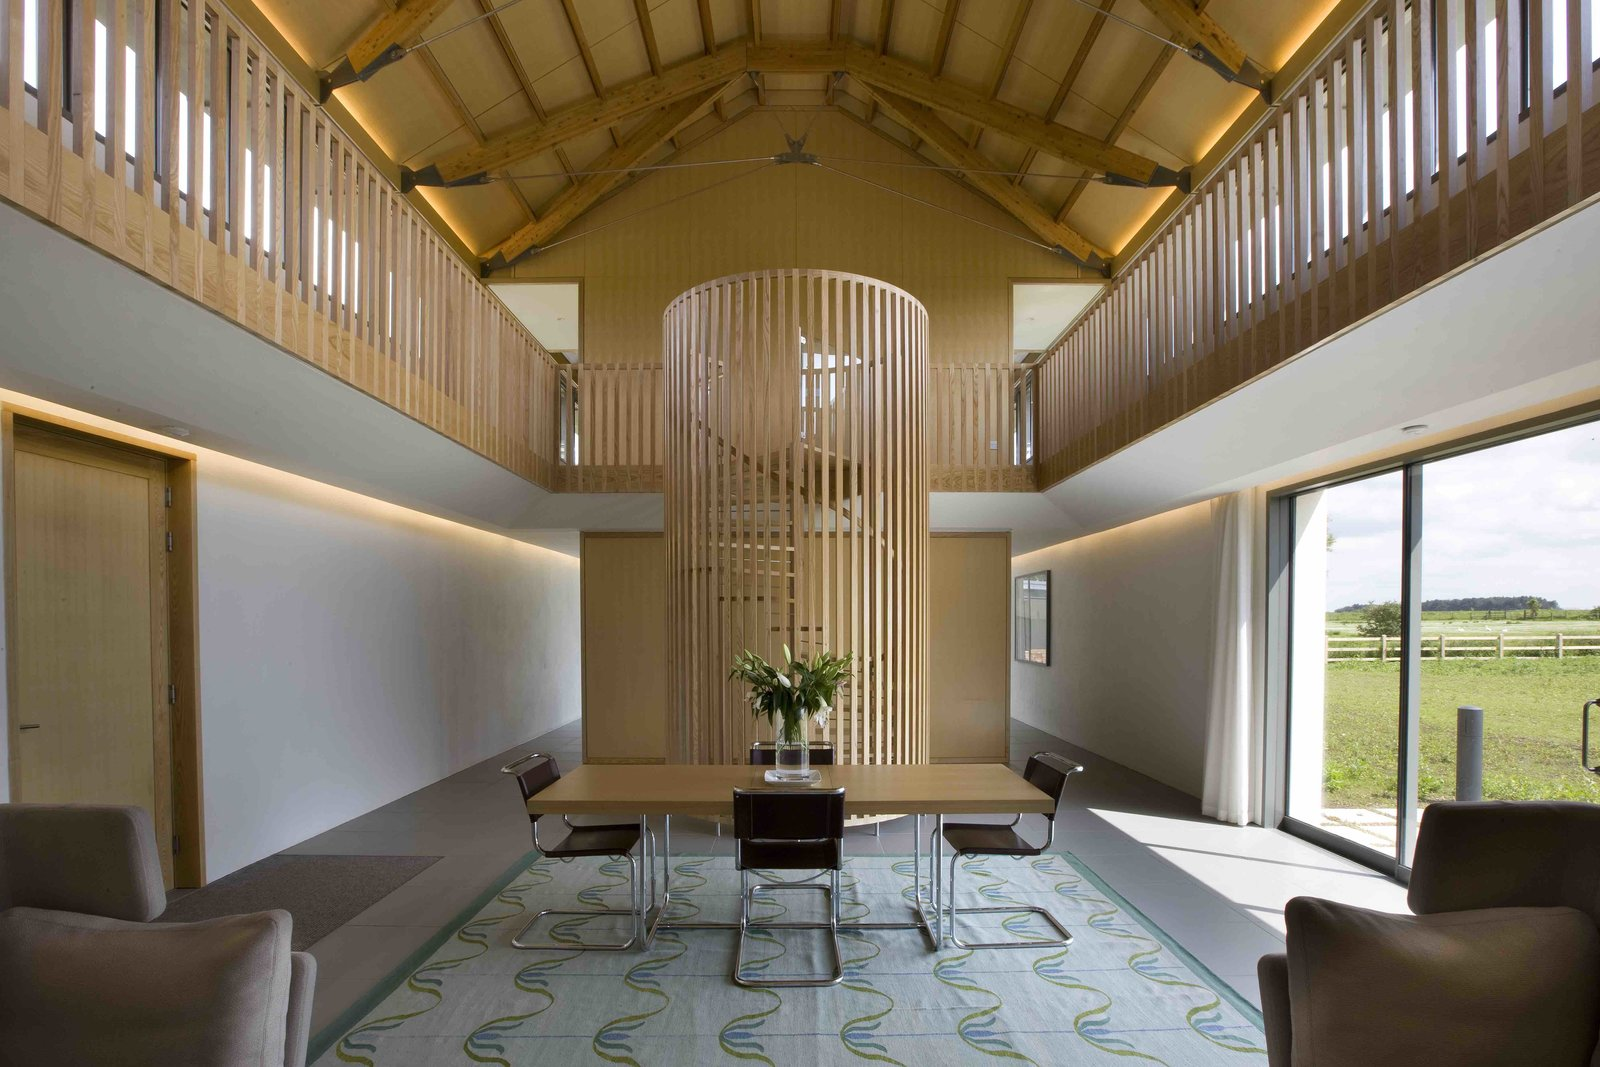 6 British Vacation Homes You Can Stay in That Were Designed by Renowned Architects - Photo 7 of 13